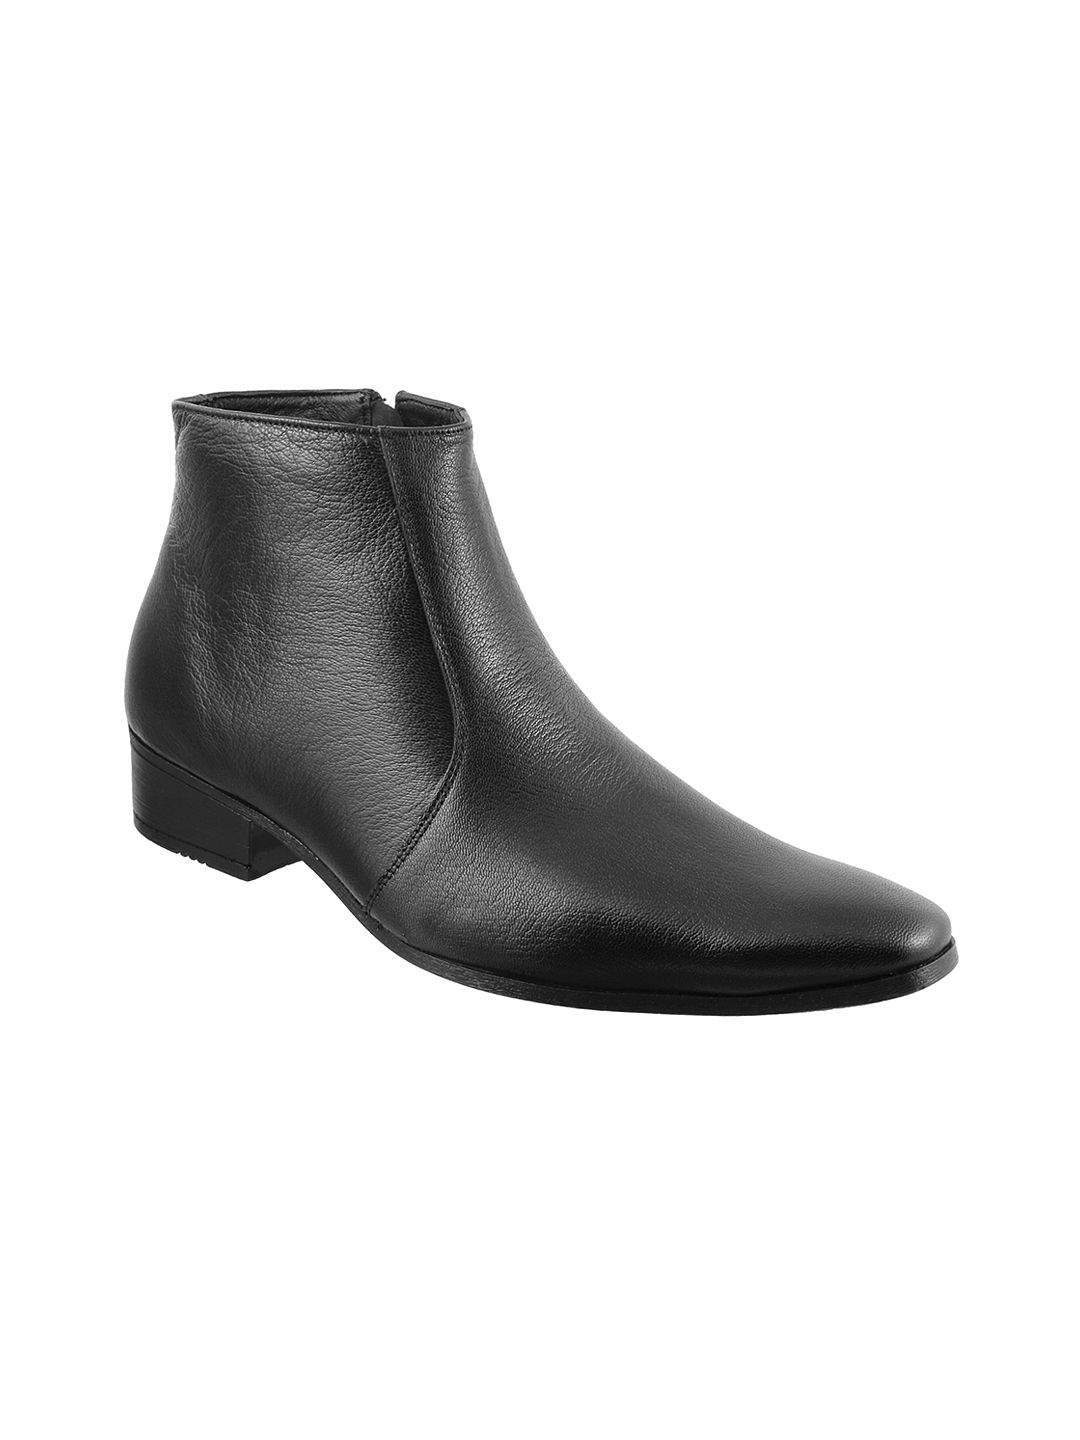 METRO Office Genuine Leather BLACK Formal Shoes